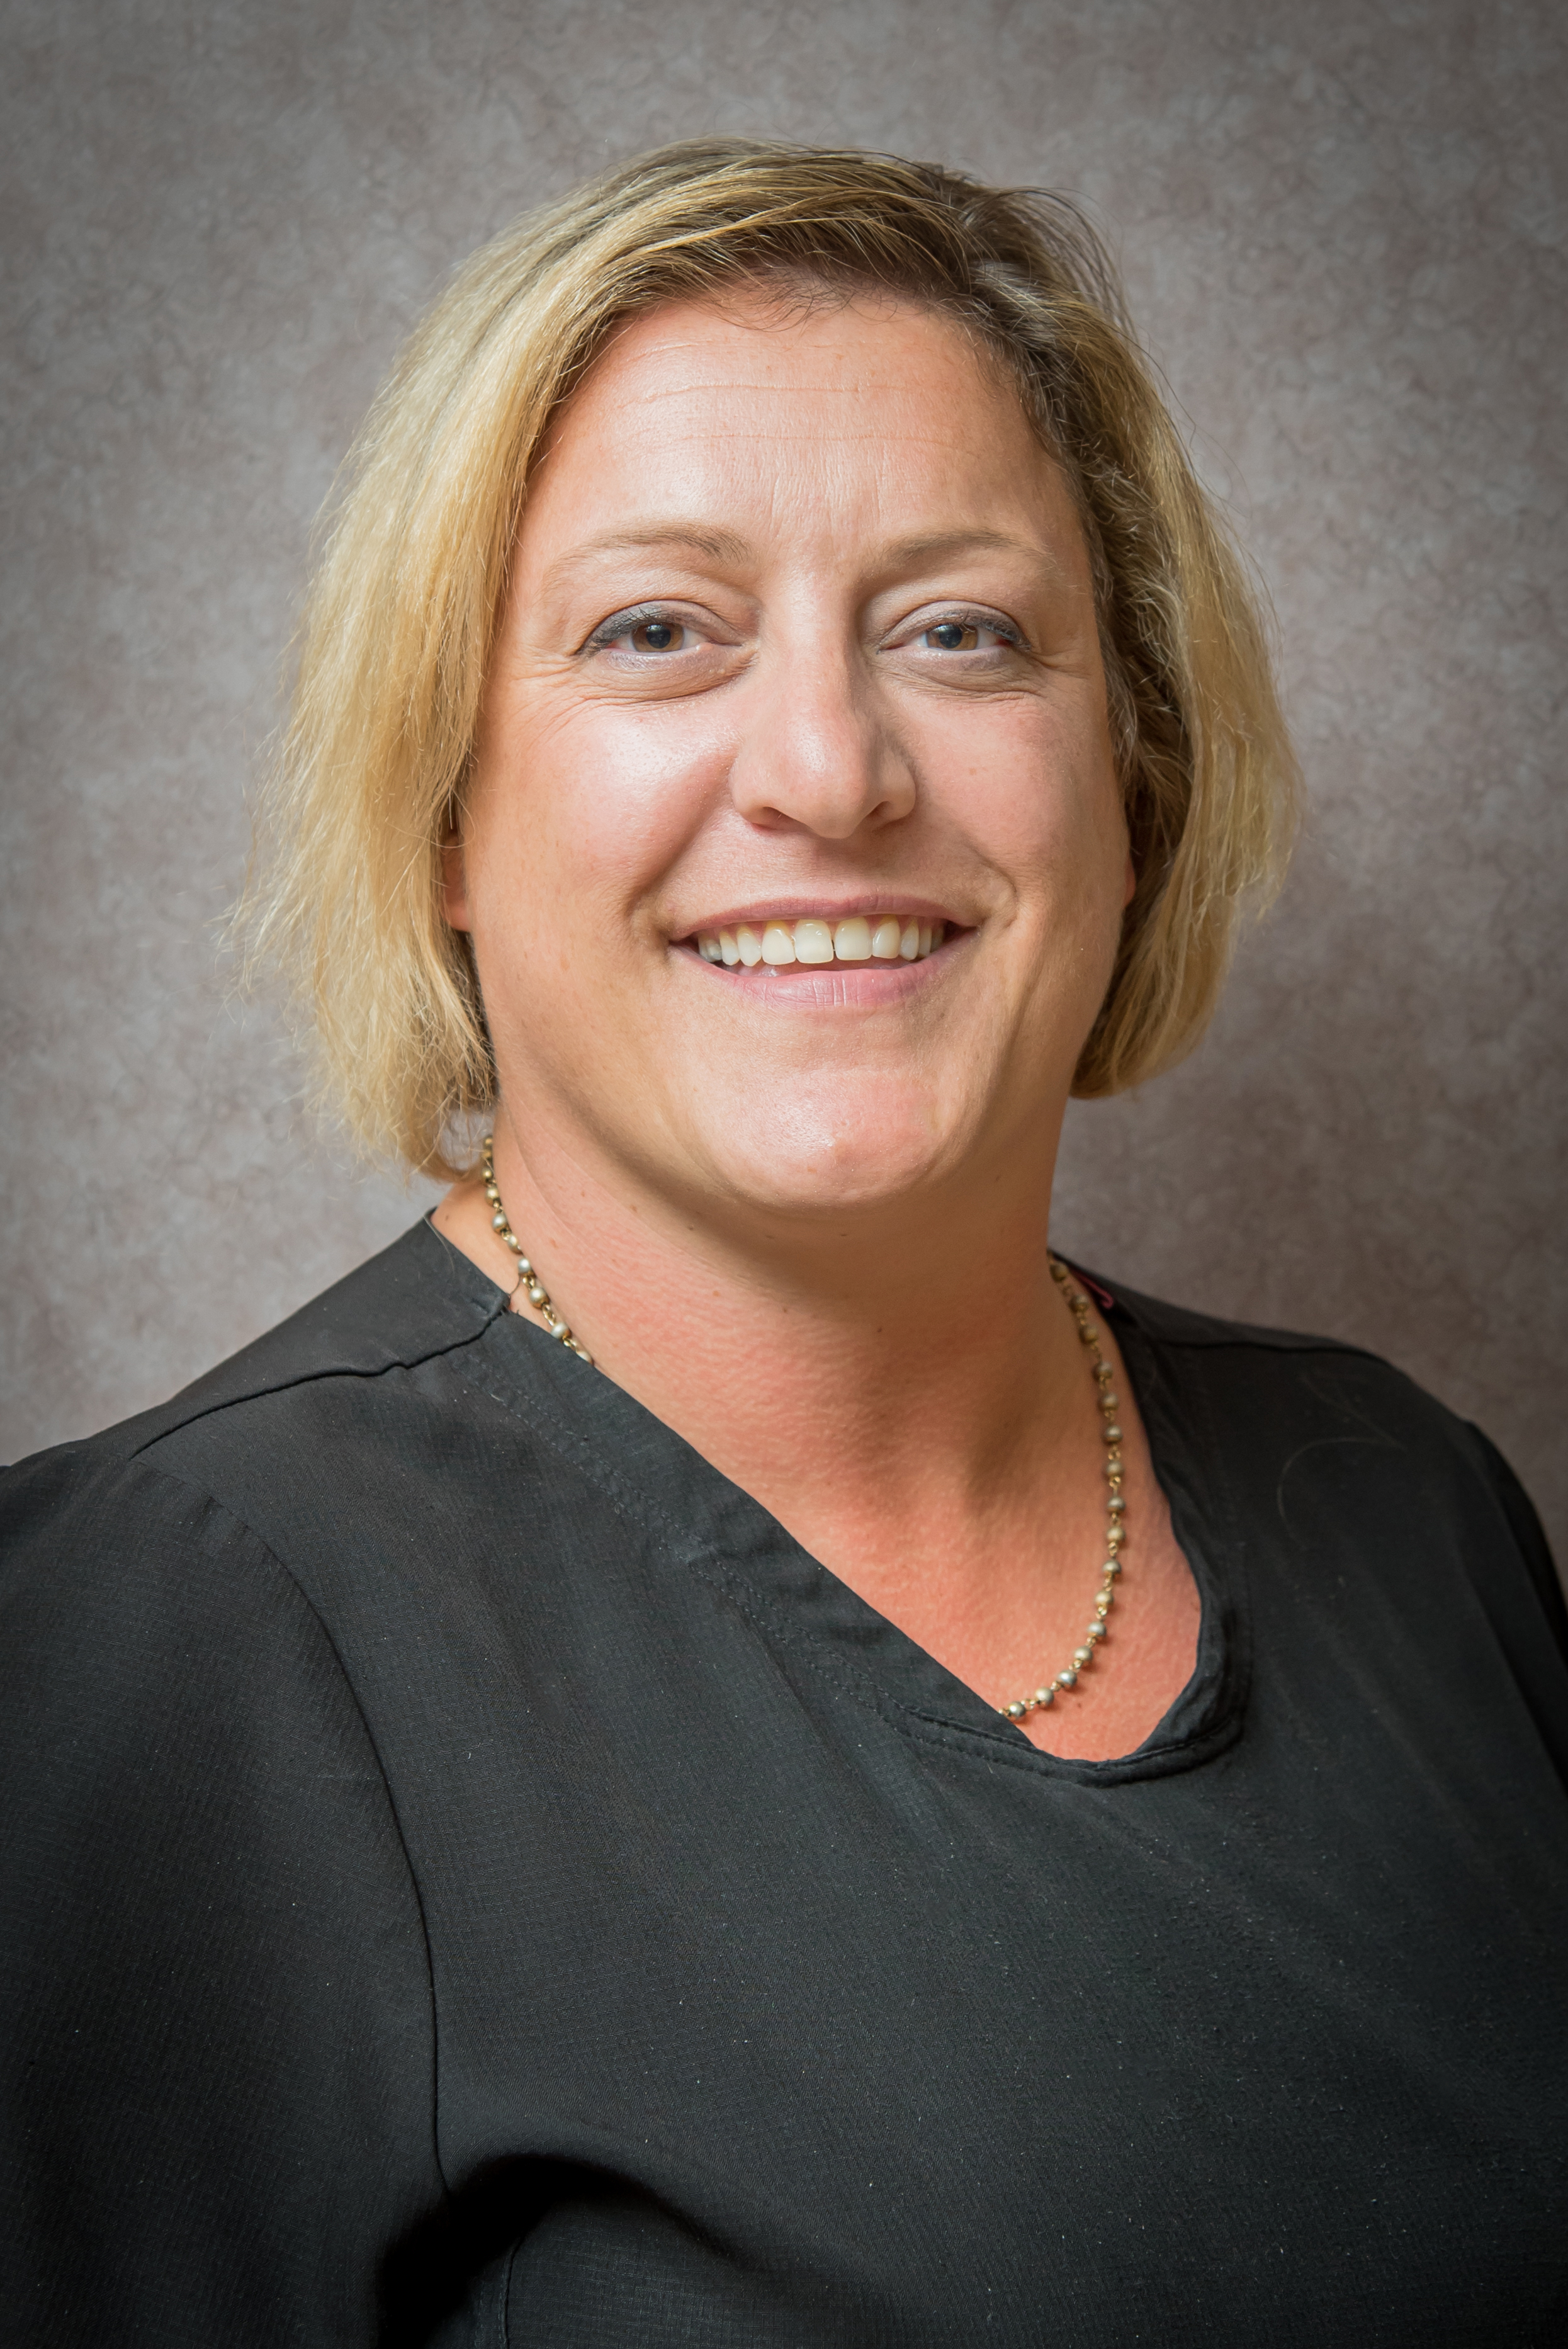 Headshot of Janelle Saville, RN